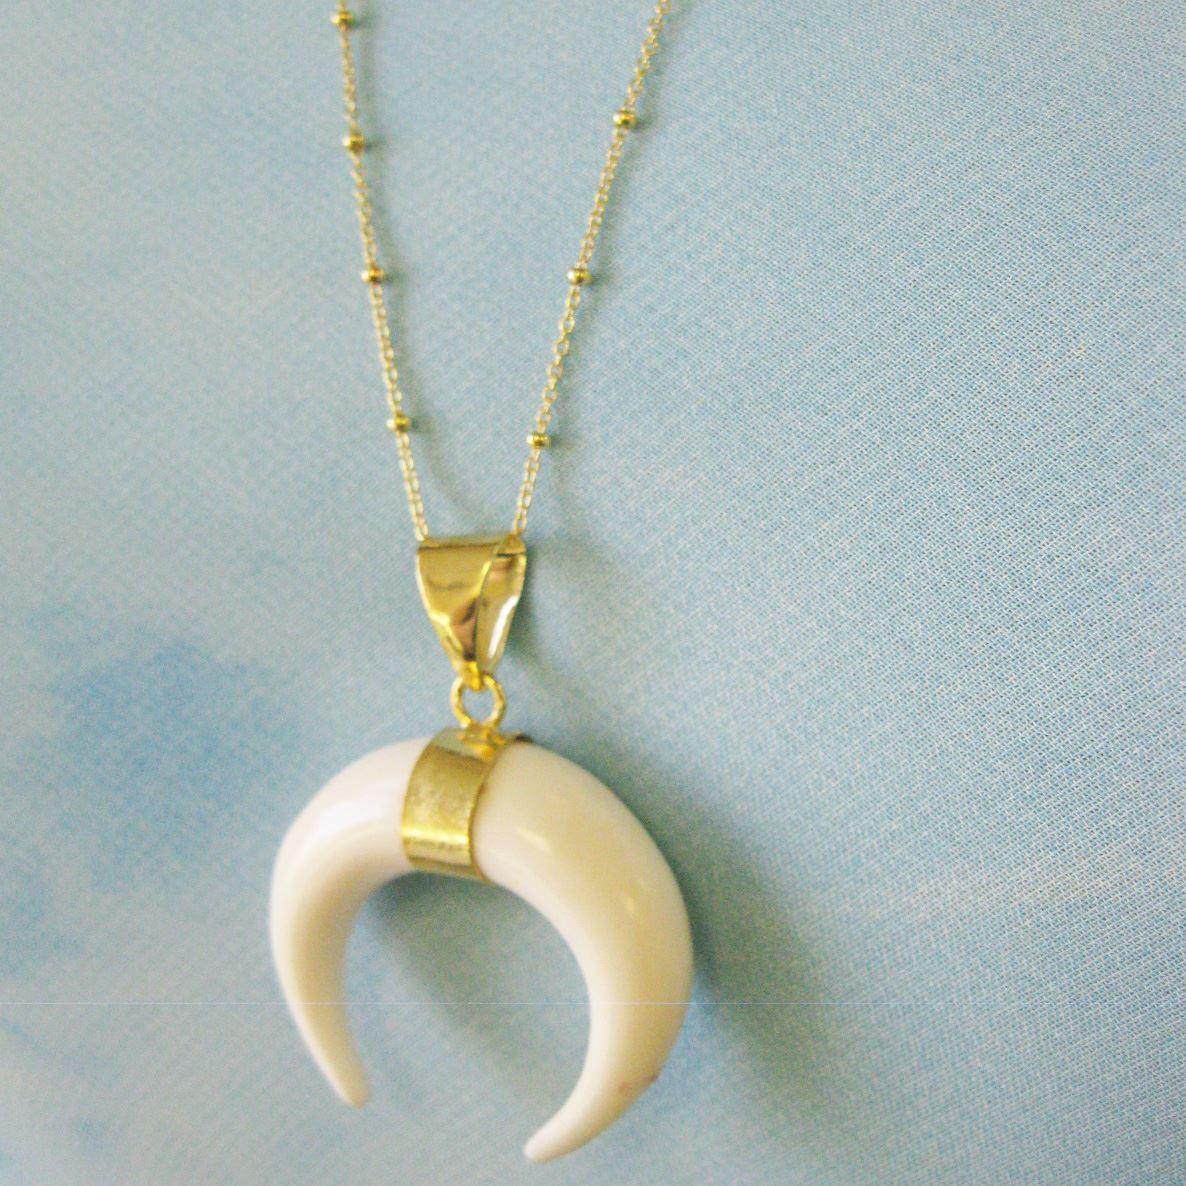 Double Horn Bone Necklace - Carved White Bone Double Tusk Necklace - Gold plated Sterling Silver Beaded Necklace Chain